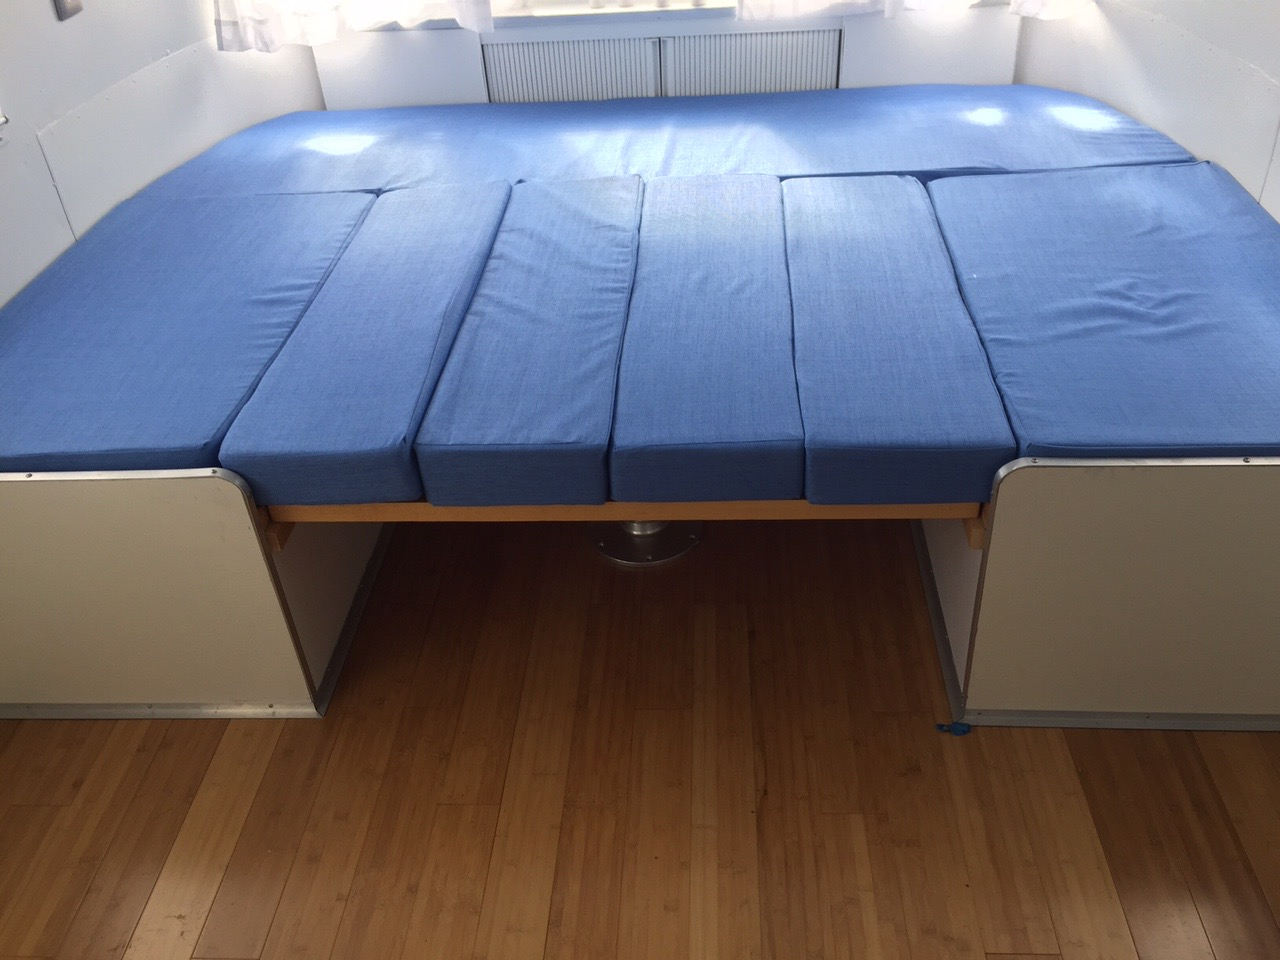 Cushions fold out to make a very comfortable roomy mattress, a little larger than queen size